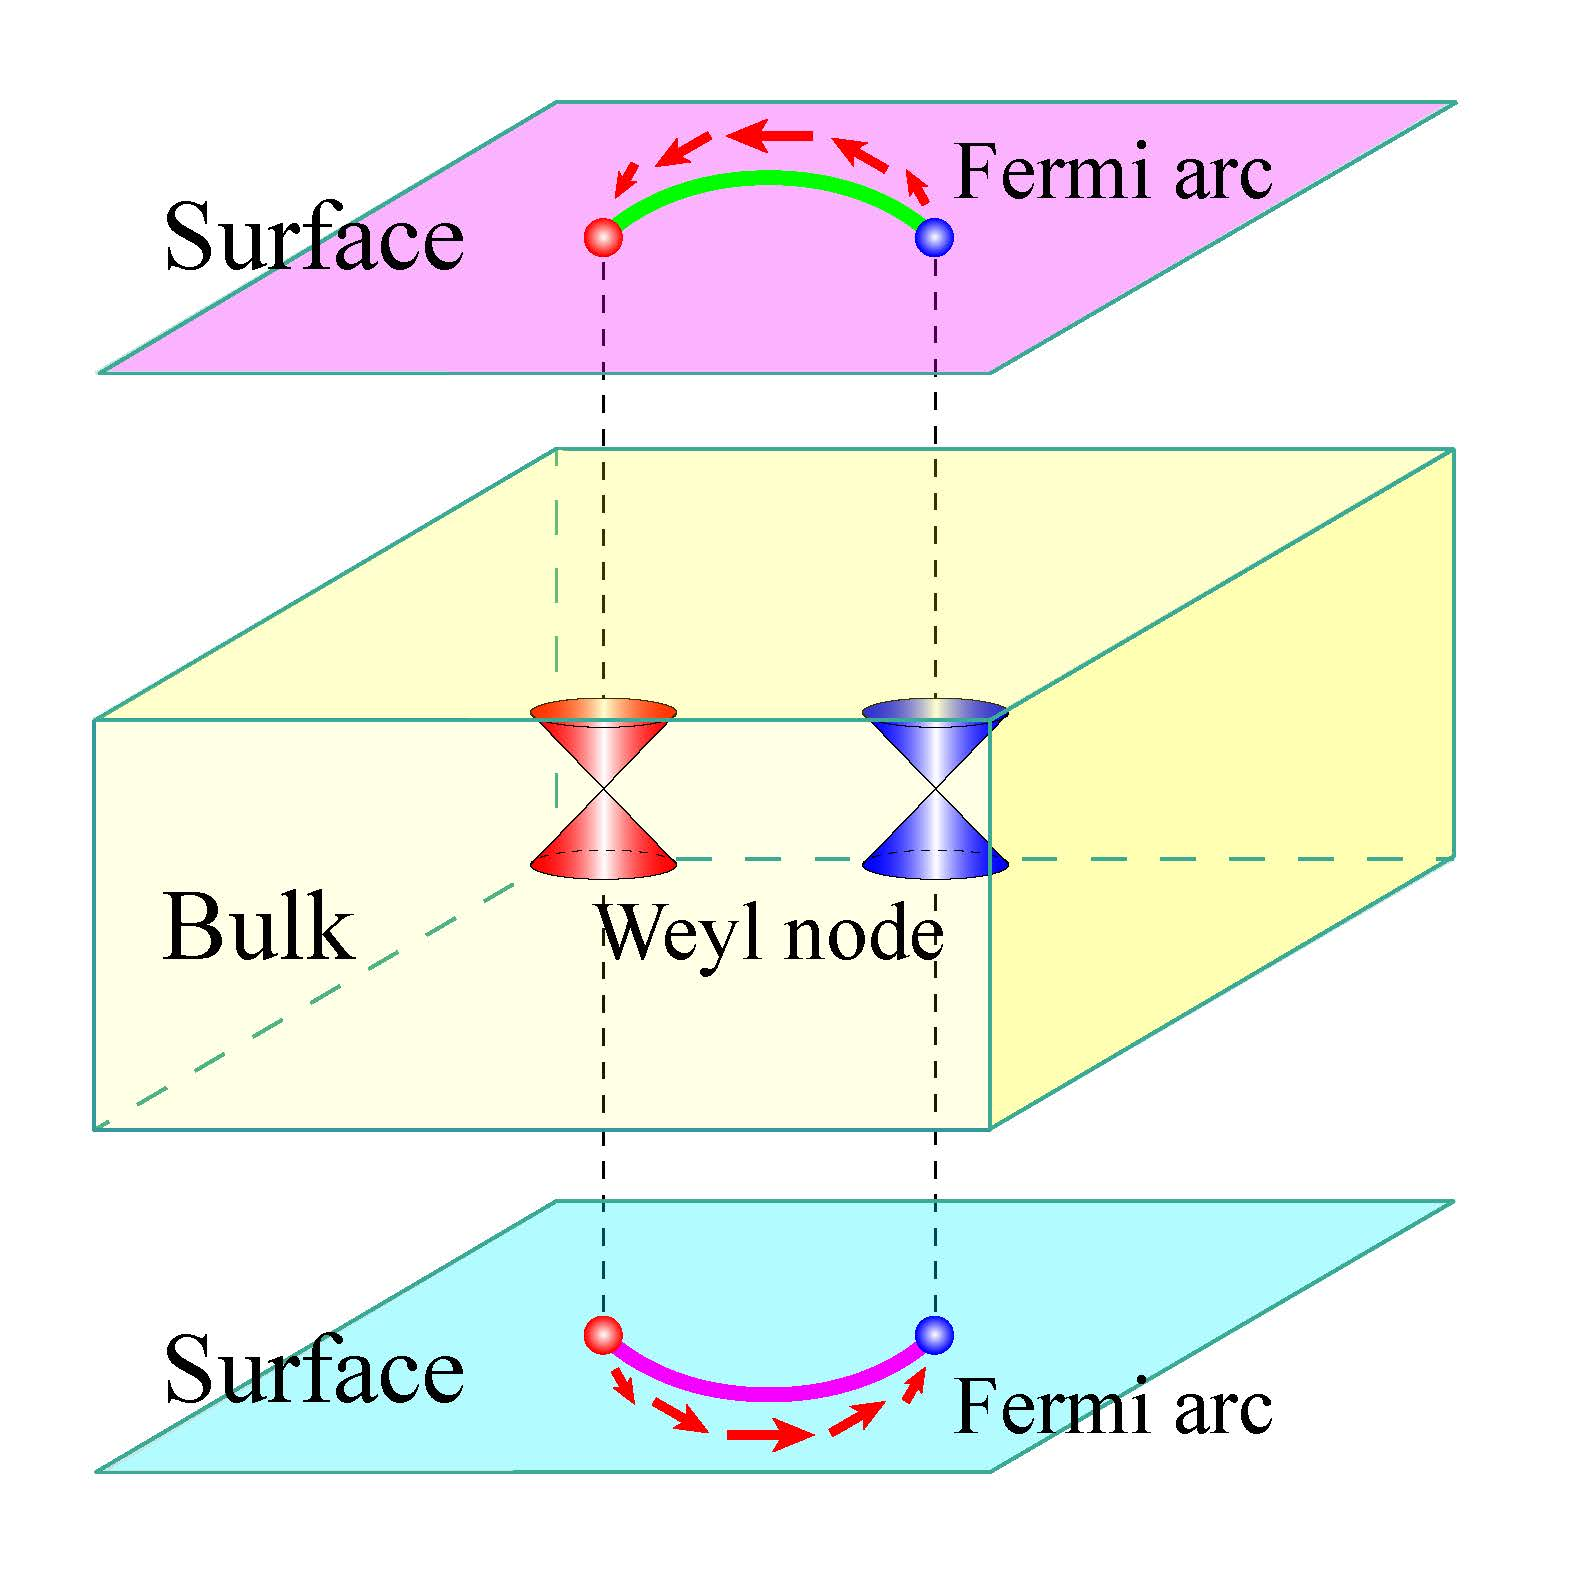 Schematic of a Weyl semimetal with spin polarized Fermi arcs on its surfaces connecting the projections of two Weyl nodes with opposite chirality.